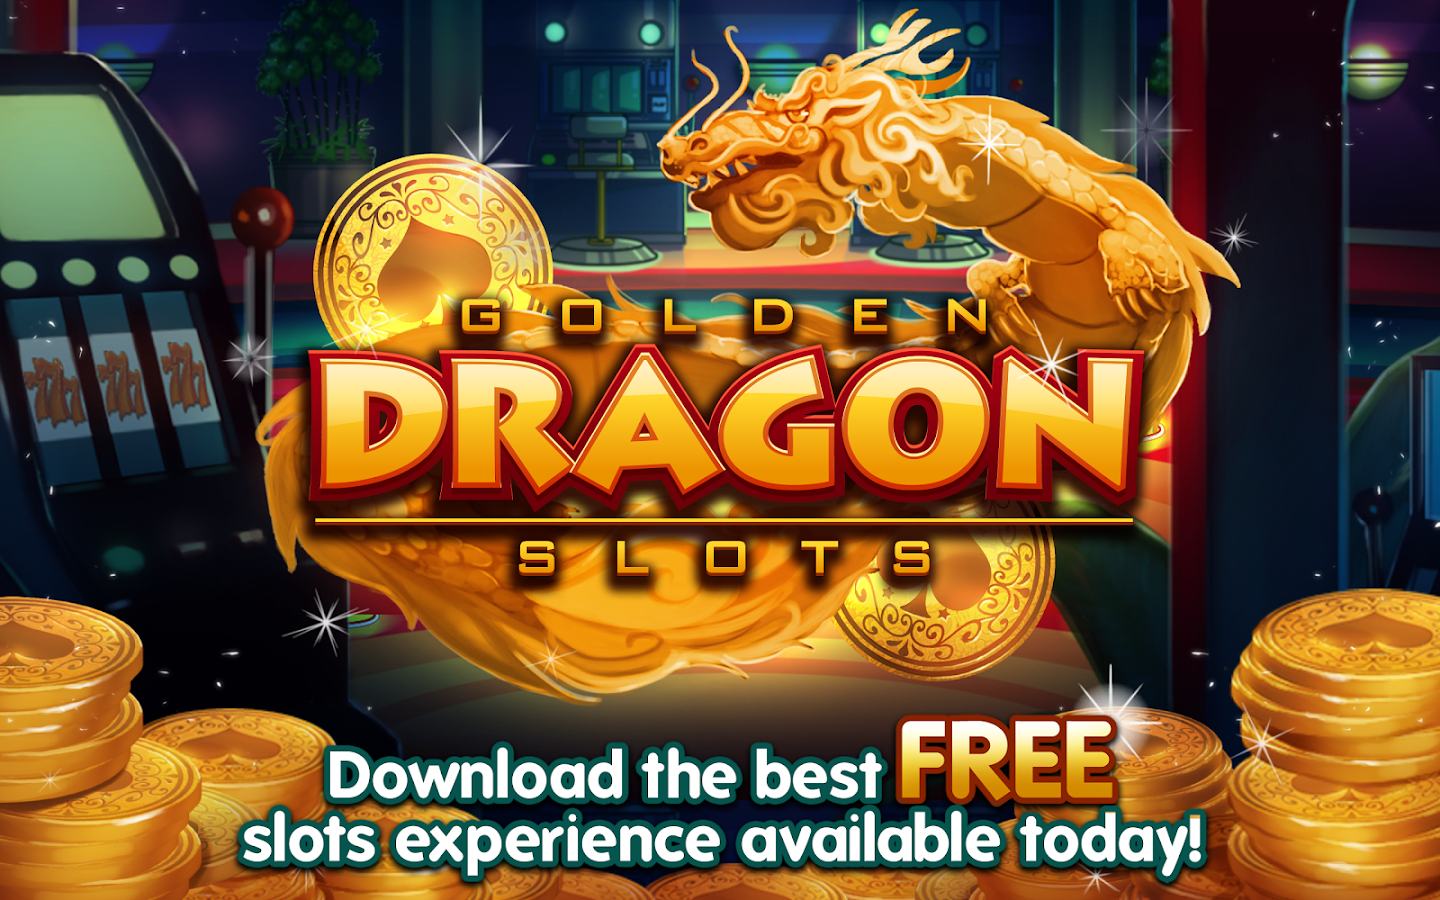 Pearl of the Dragon Slots - Play Free Casino Slot Games